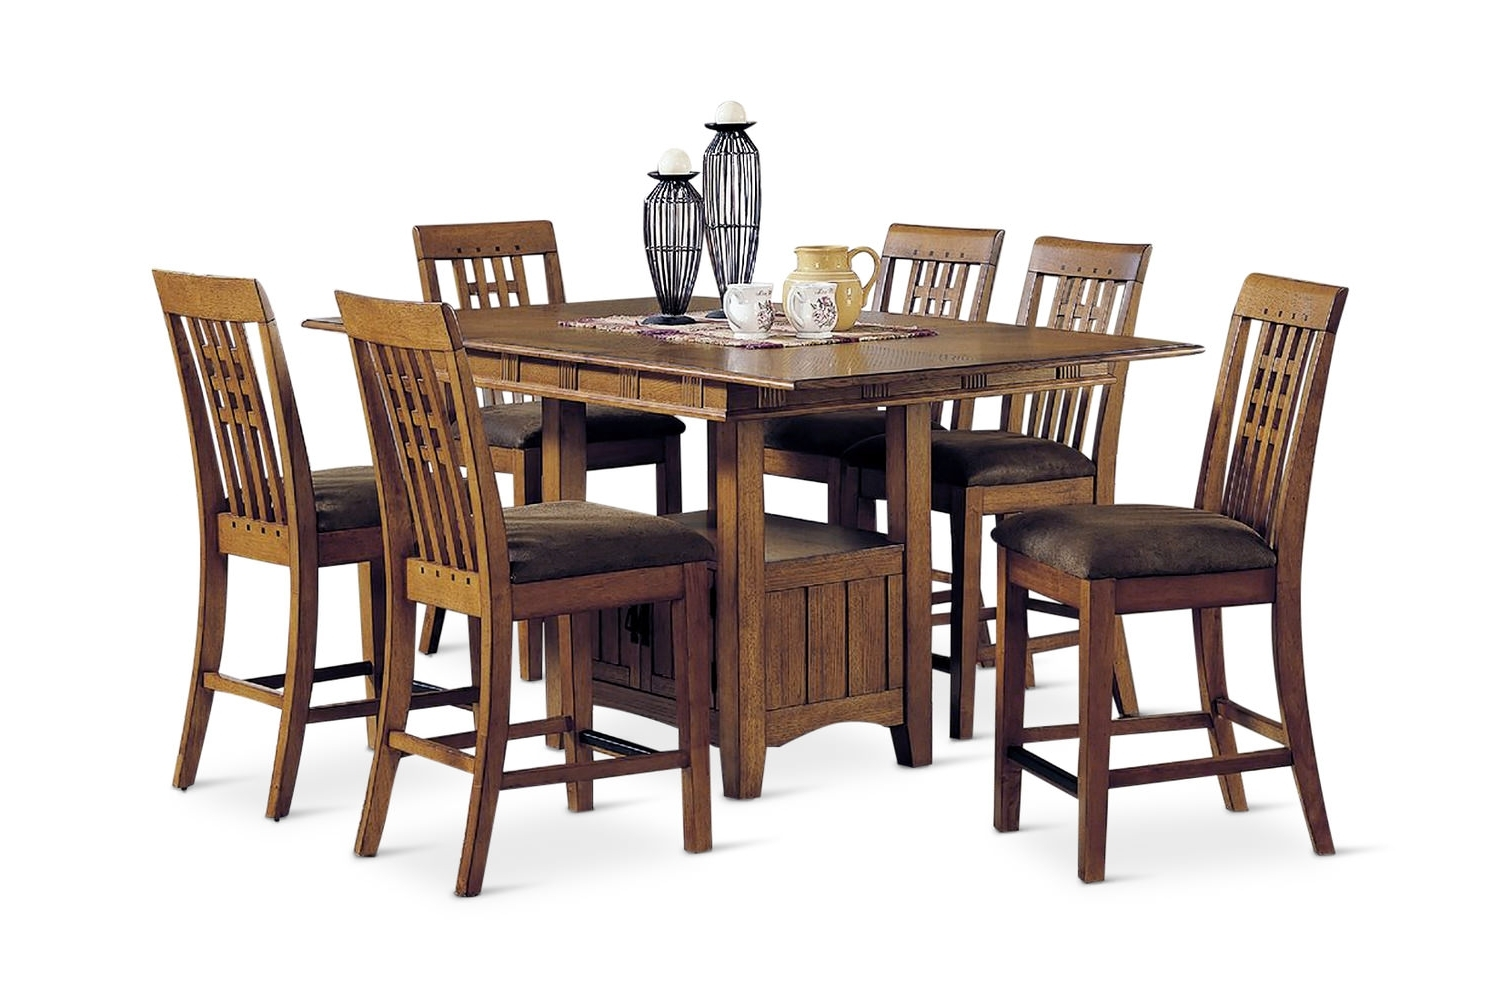 Most Popular Dining Sets – Kitchen & Dining Room Sets – Hom Furniture Intended For Craftsman 7 Piece Rectangle Extension Dining Sets With Arm & Side Chairs (View 13 of 25)